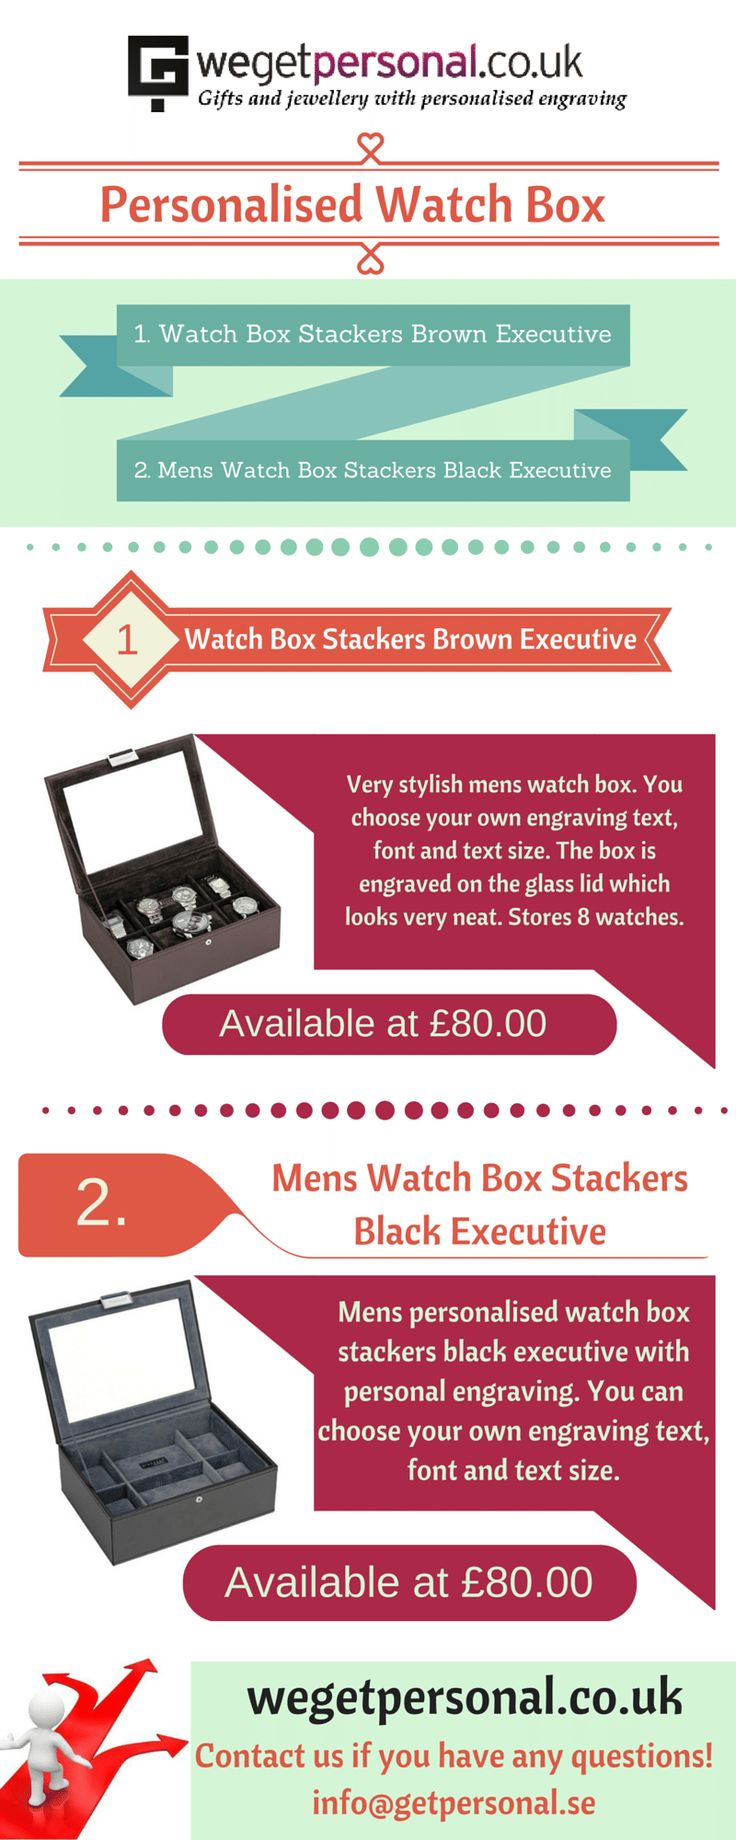 Do you want to buy present on this father's day? Shop for fashionable and classy personalised watch box from We Get Personal UK which makes your father happy. You can choose your own engraving text, font and text size to make it more personalised. Order today and you will have it delivered with engraving in only a few days!